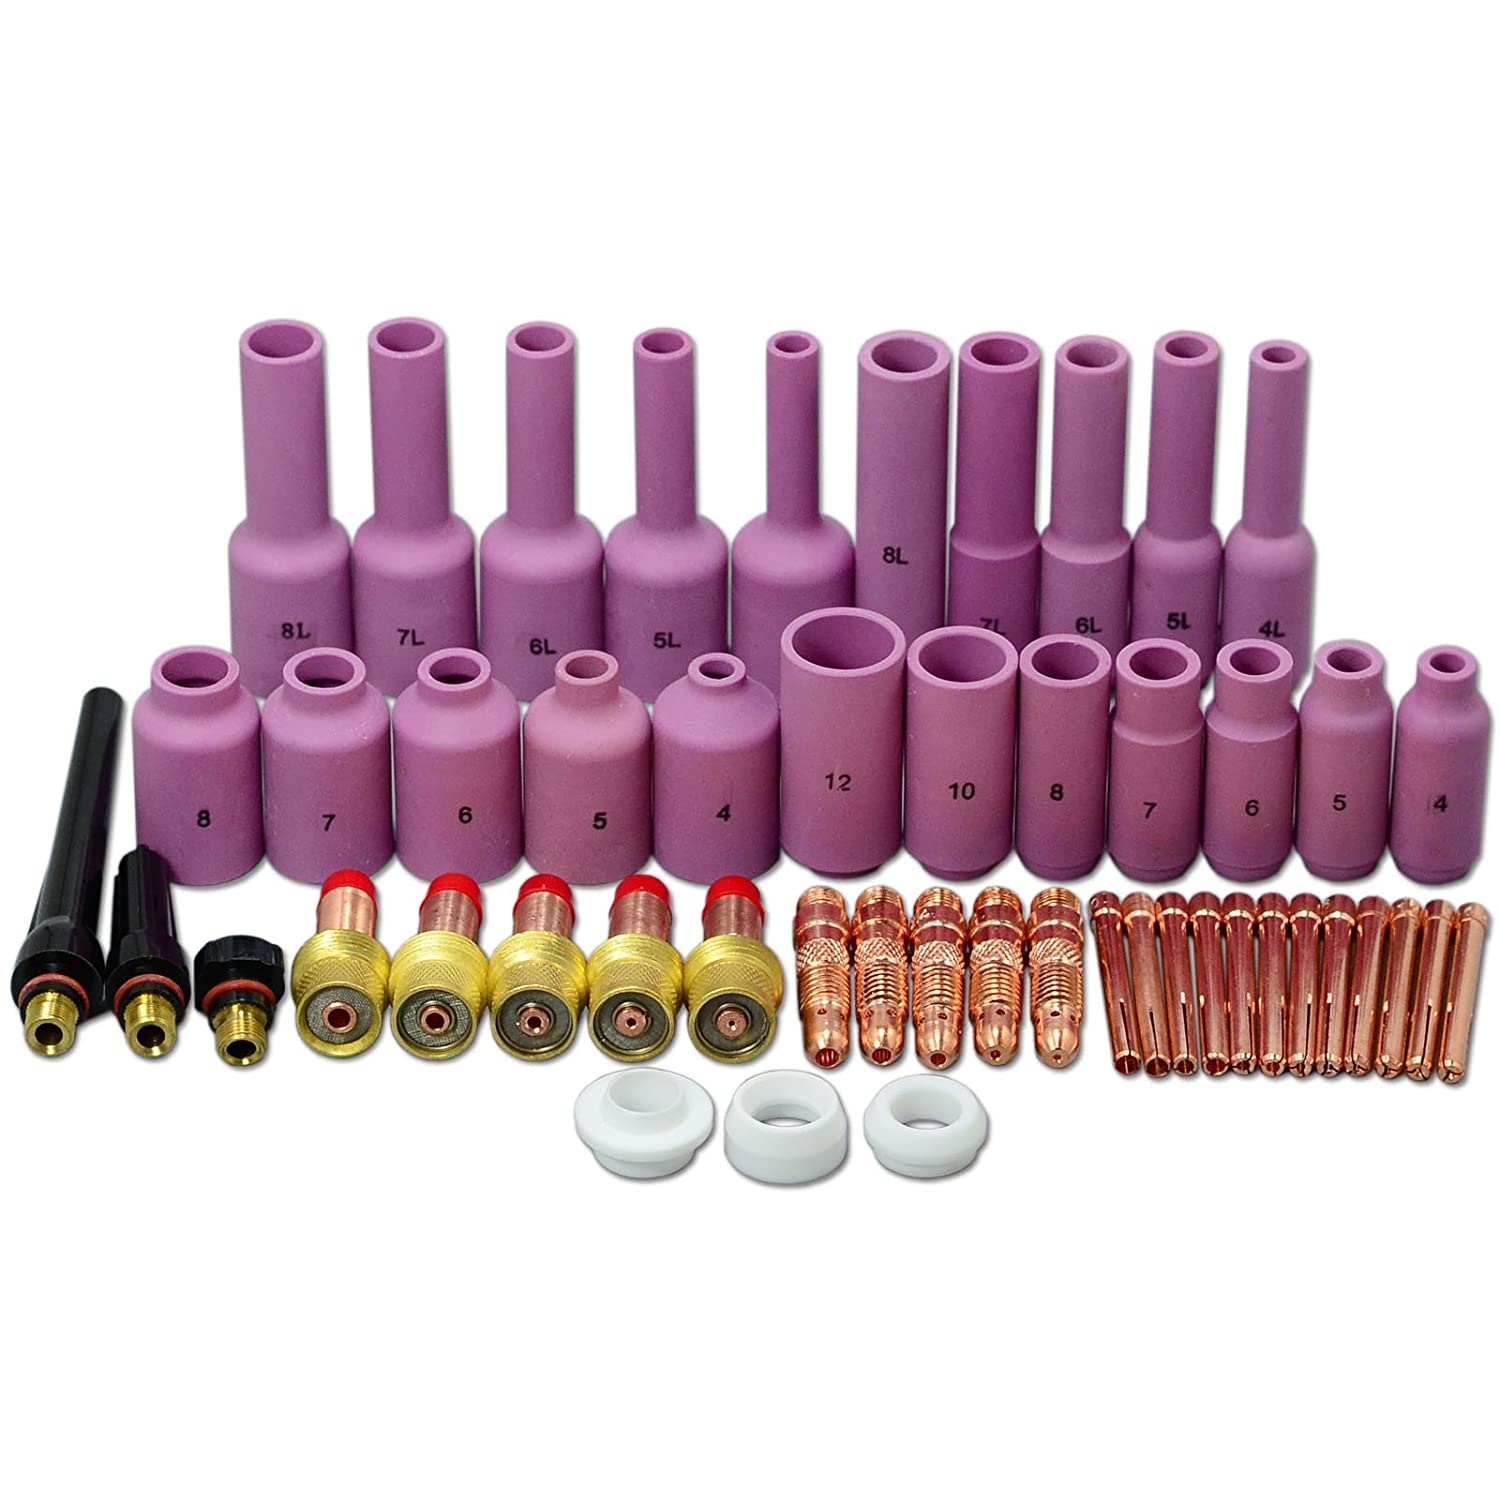 TIG Gaz Objectif tig back cap cé ramique buse Assorted Taille Kit Fit DB SR WP17 18 26 TIG torche de soudage 50pcs RIVERWELDstore